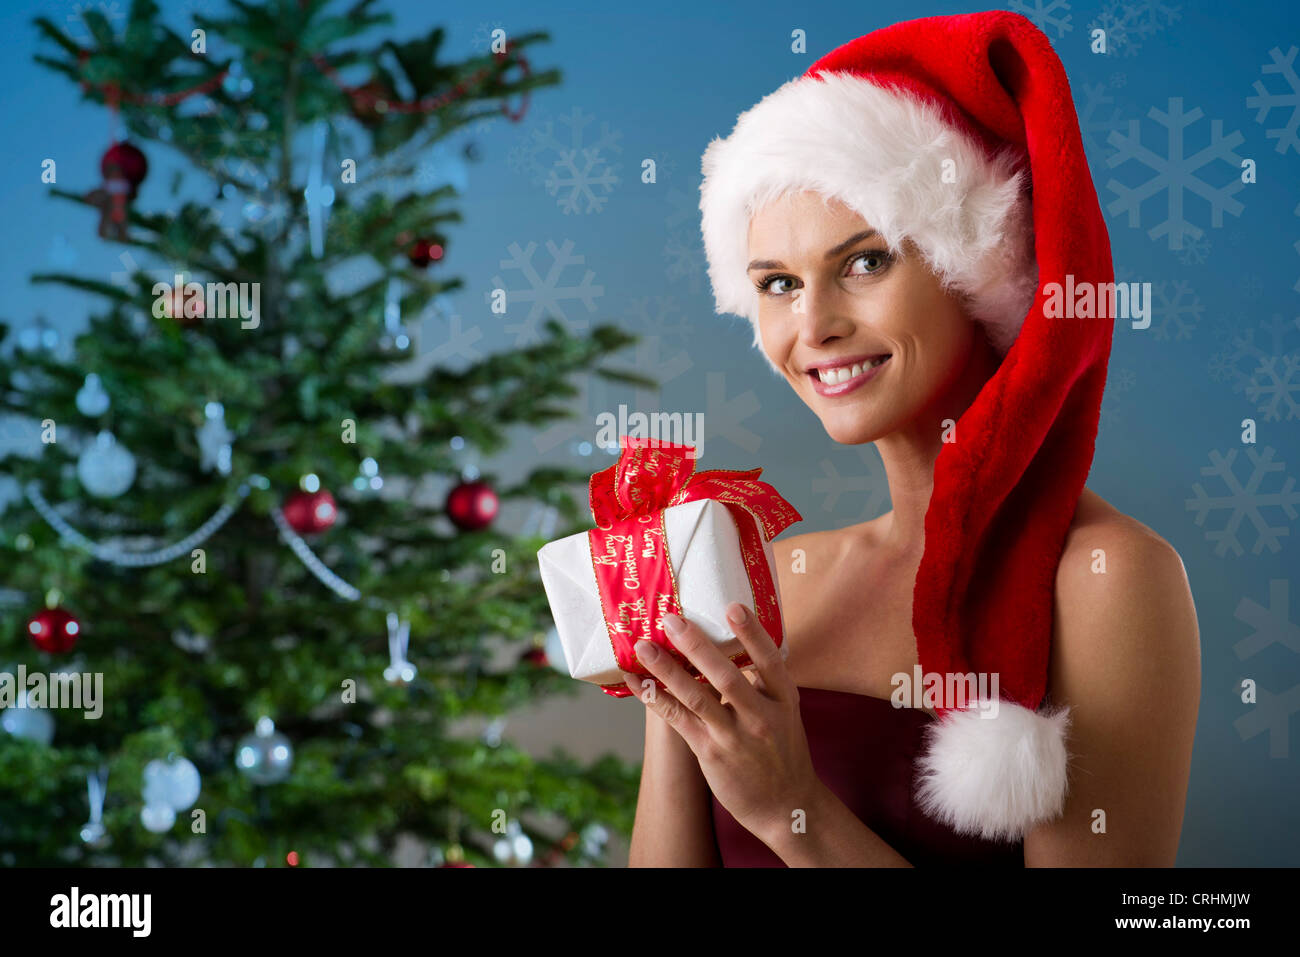 Woman wearing Santa hat and holding Christmas present, portrait - Stock Image